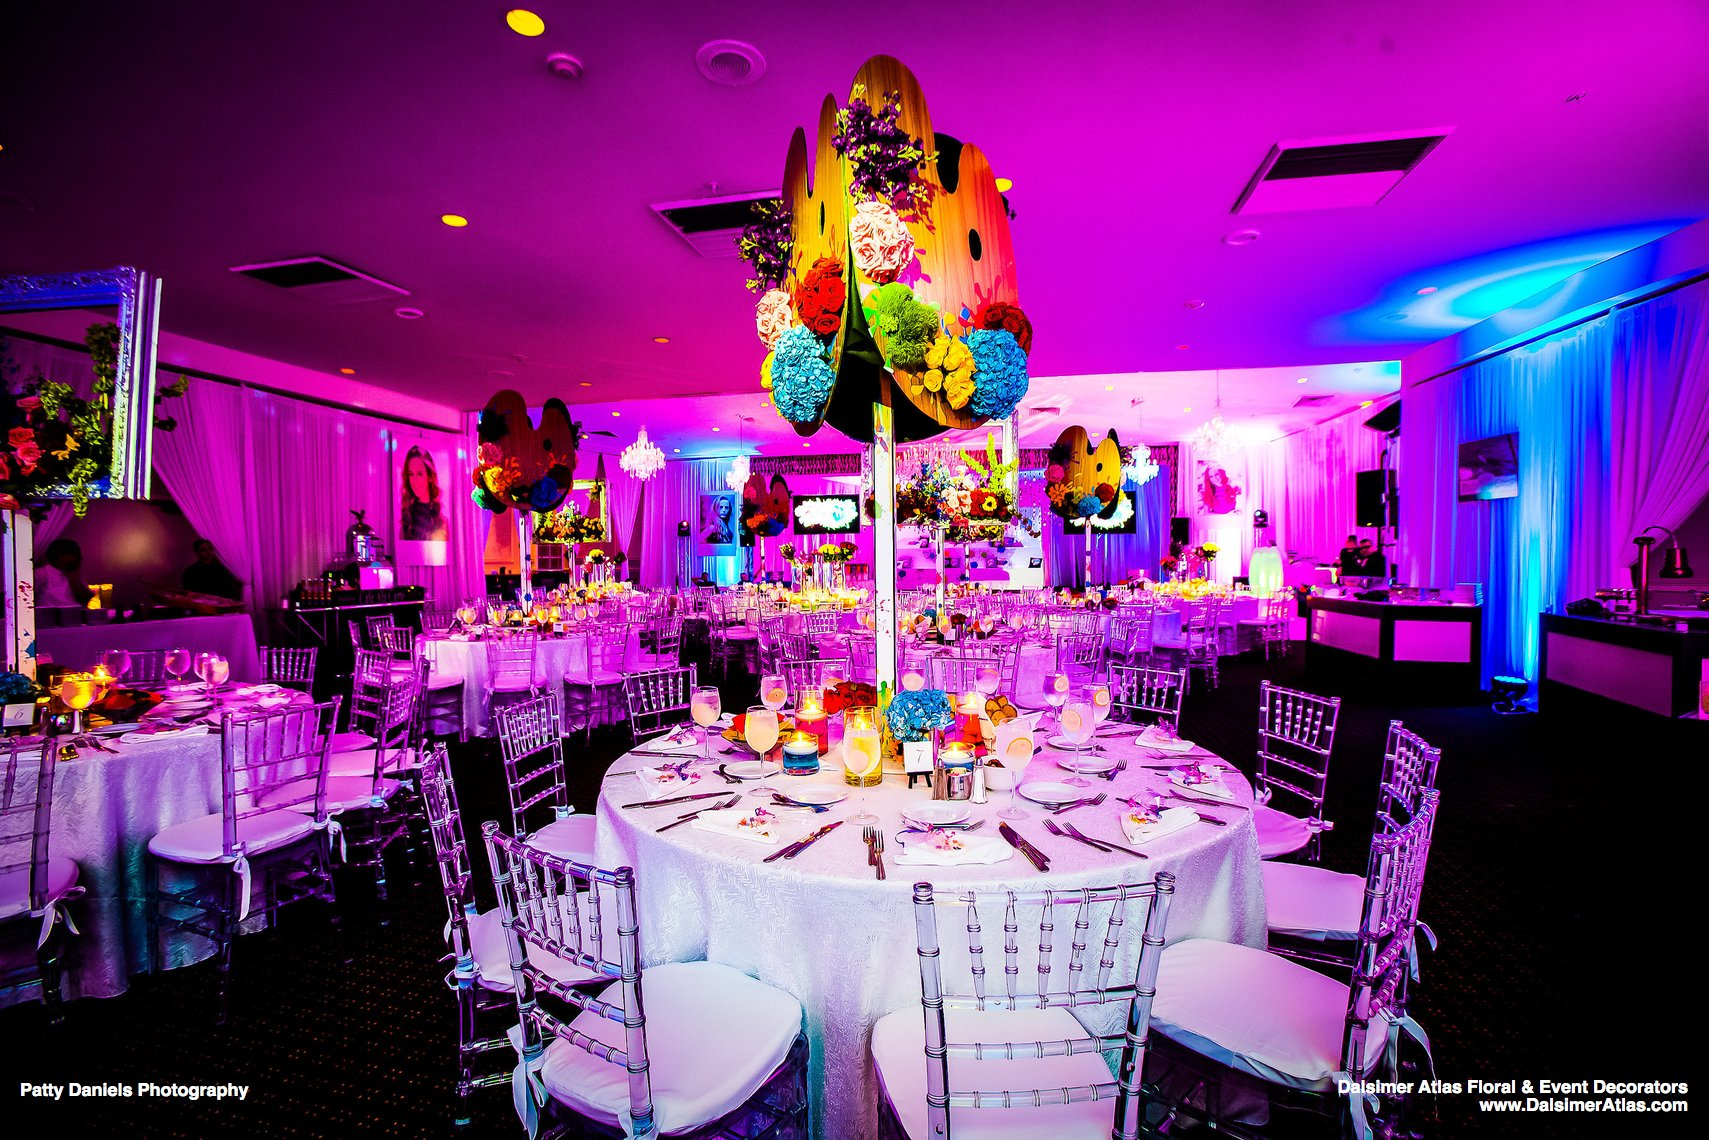 mitzvah-theme-decorations-bat-mitzvah-temple-kol-ami-emanu-el-plantation-florida-dalsimer-atlas-12